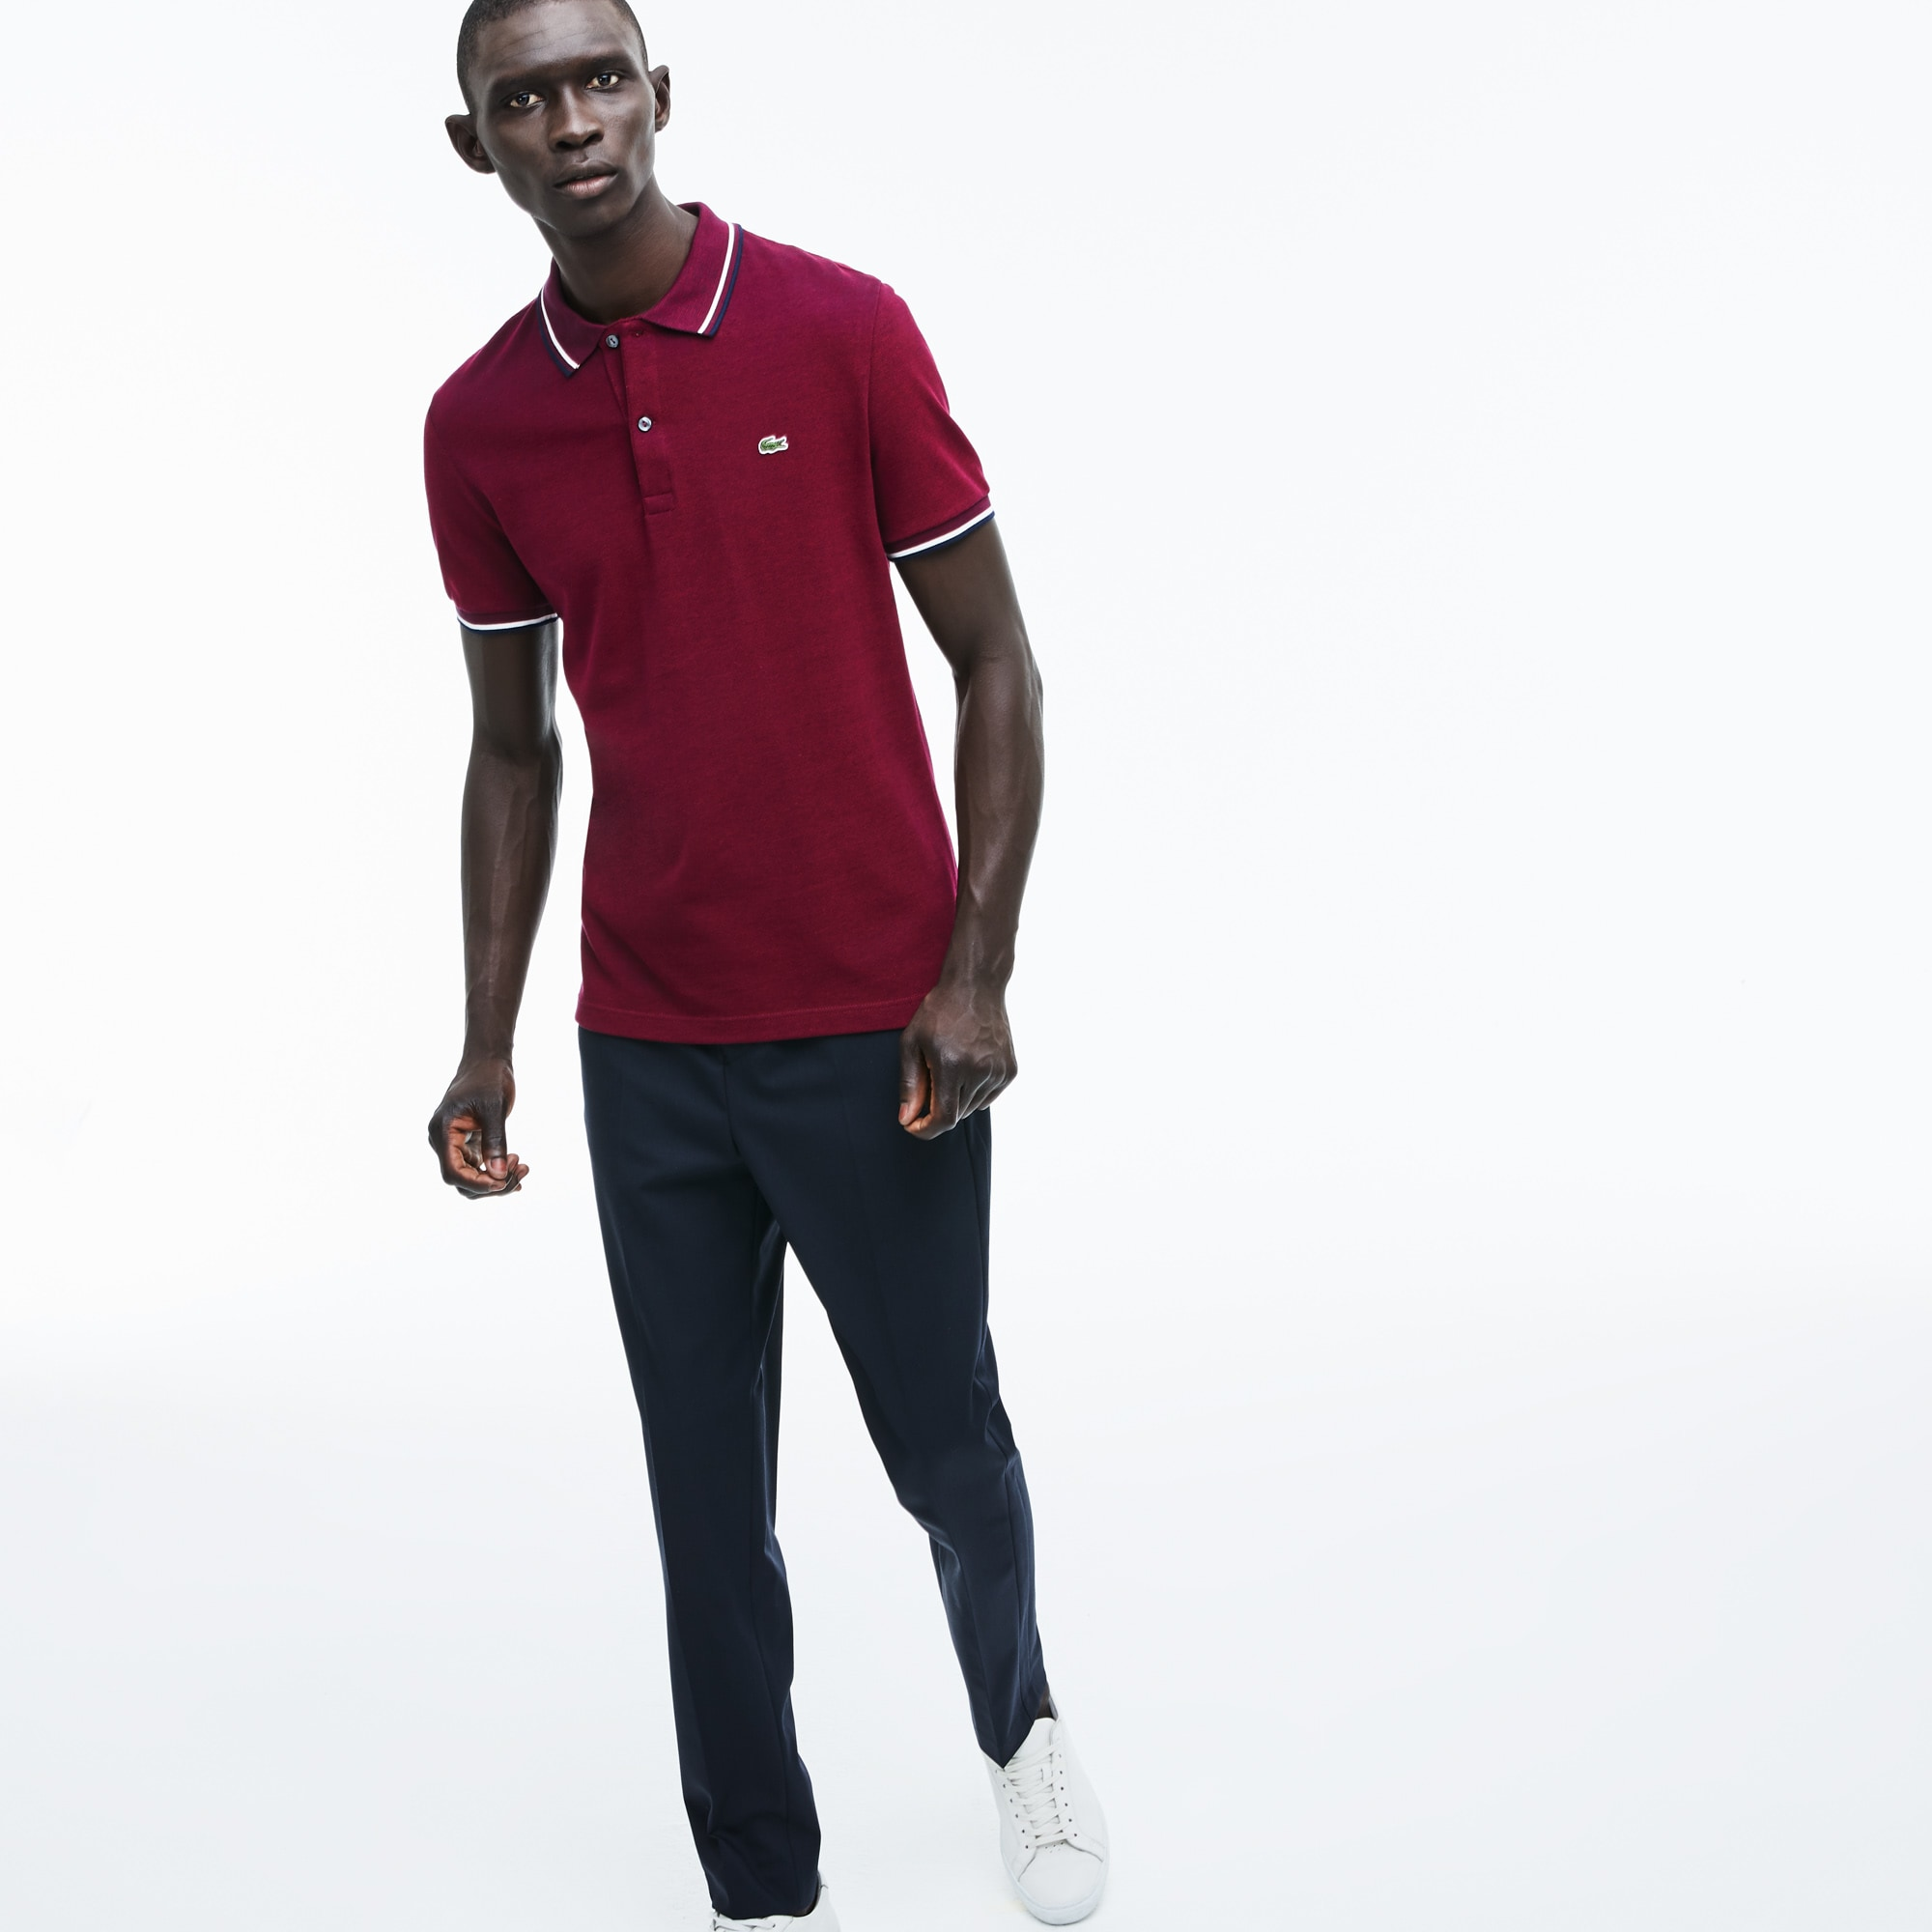 Men's Slim Fit Contrast Accents Caviar Piqué Polo